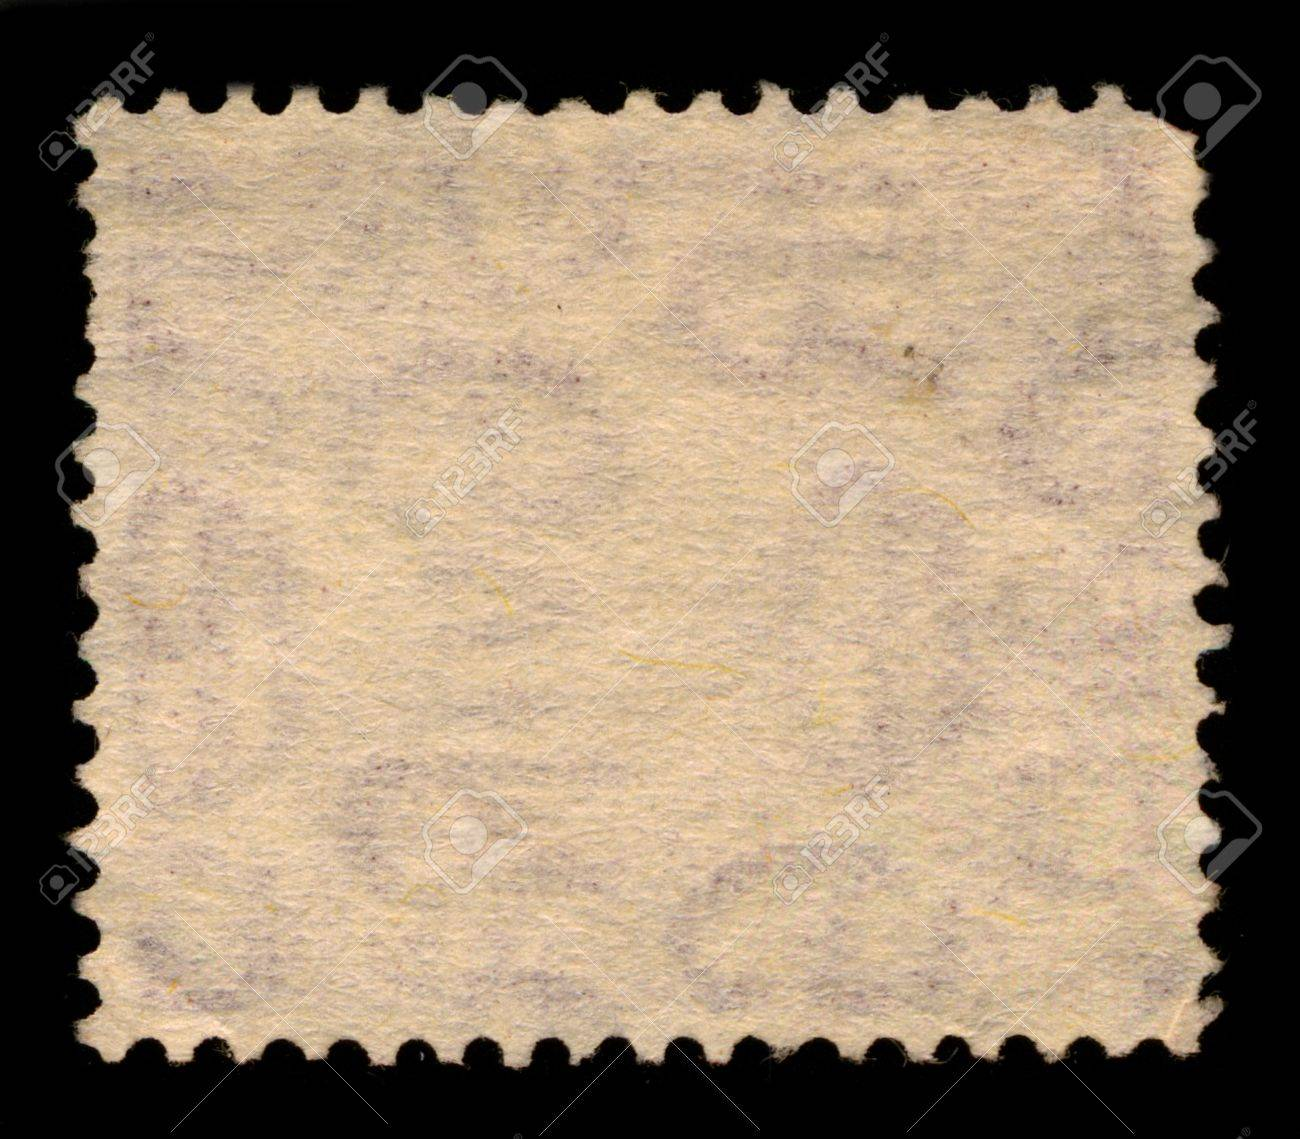 The reverse side of a postage stamp. Stock Photo - 9072543